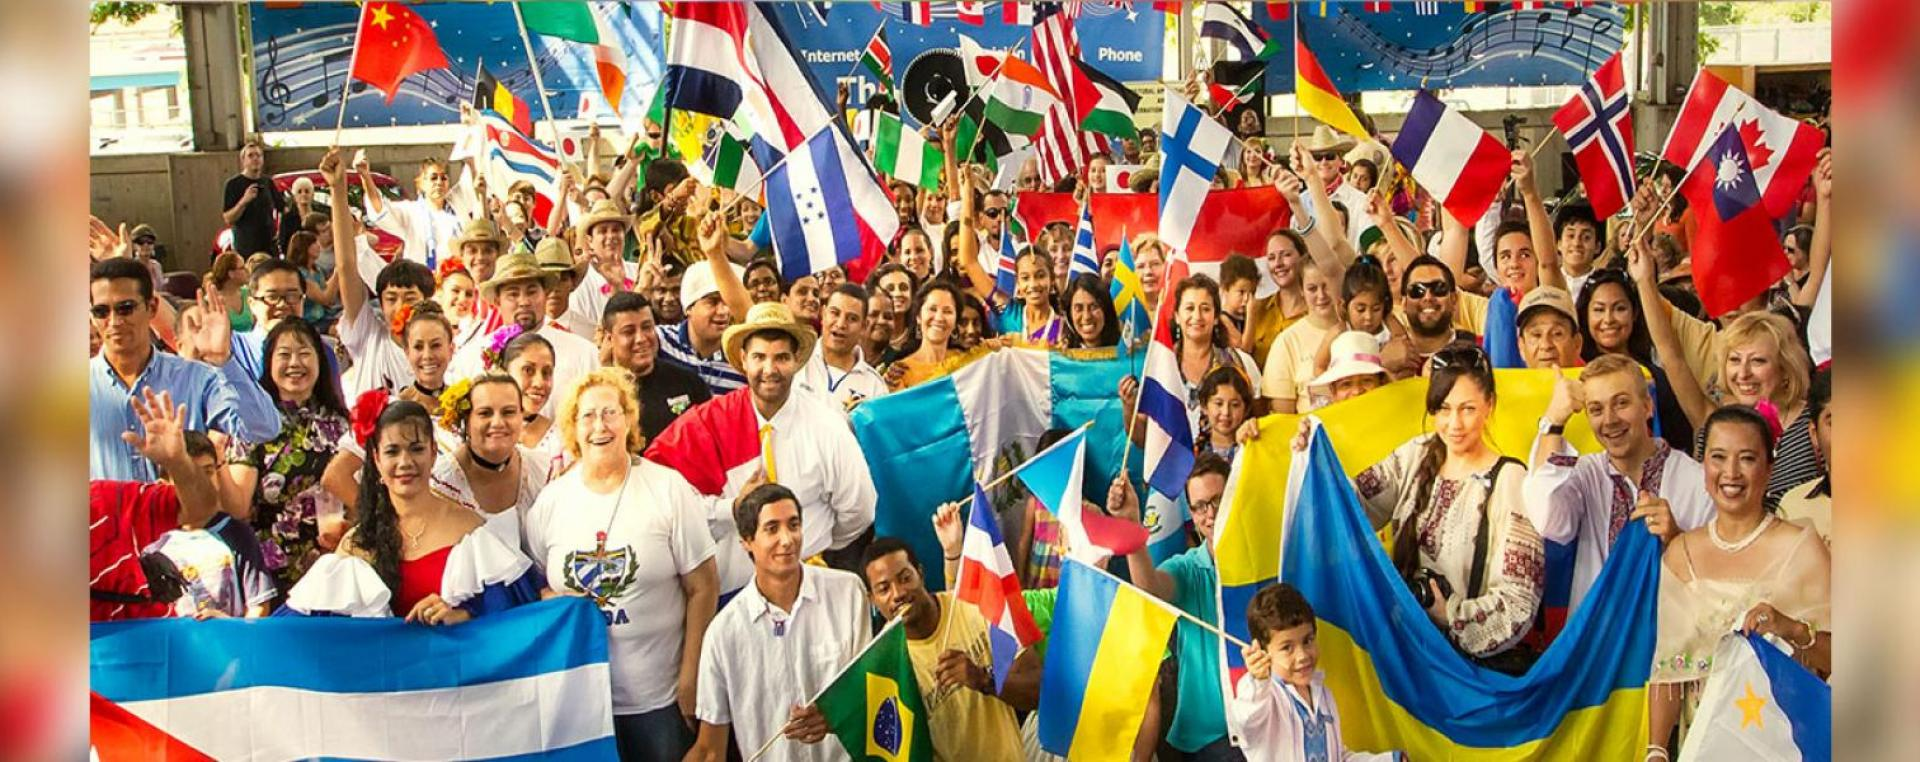 Culture Fest attendees parading flags from various countries.